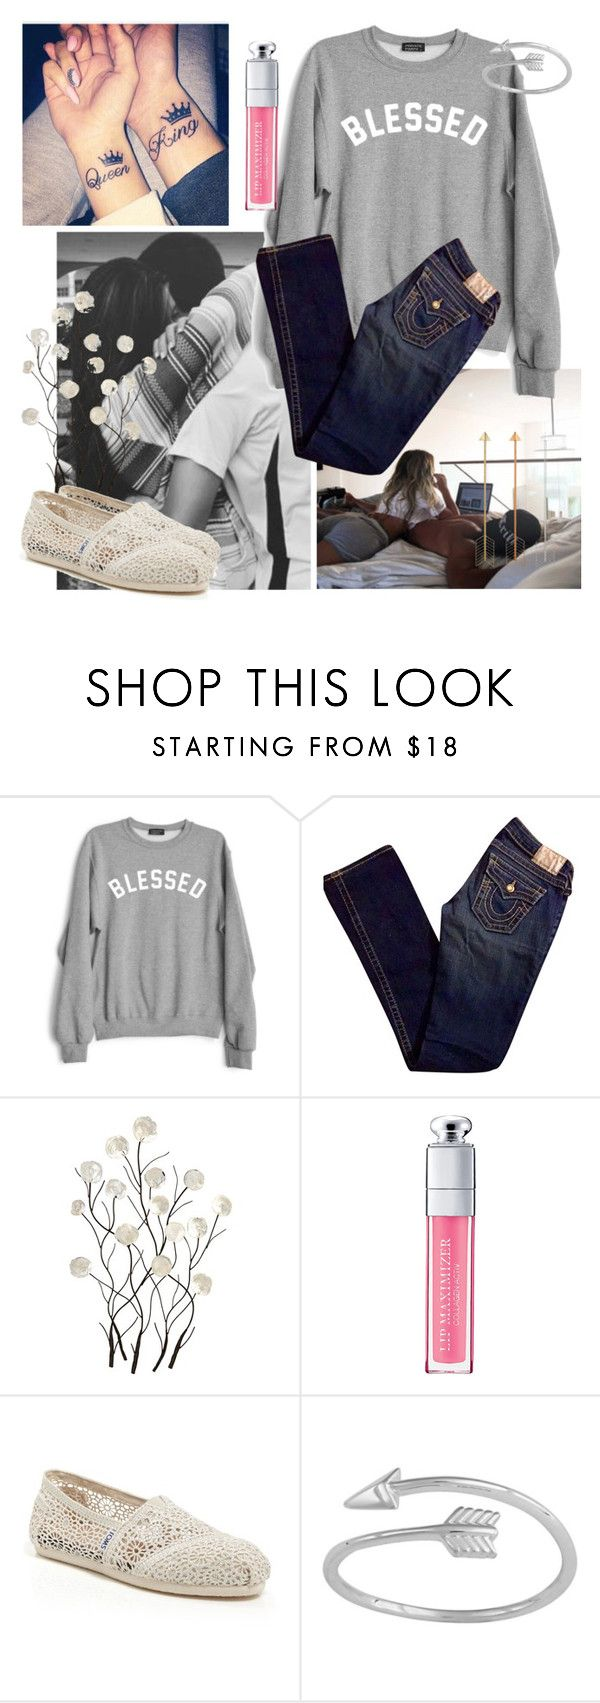 """""""So blessed to have you"""" by sarahwuzhere ❤ liked on Polyvore featuring Private Party, True Religion, Universal Lighting and Decor, Christian Dior and TOMS"""